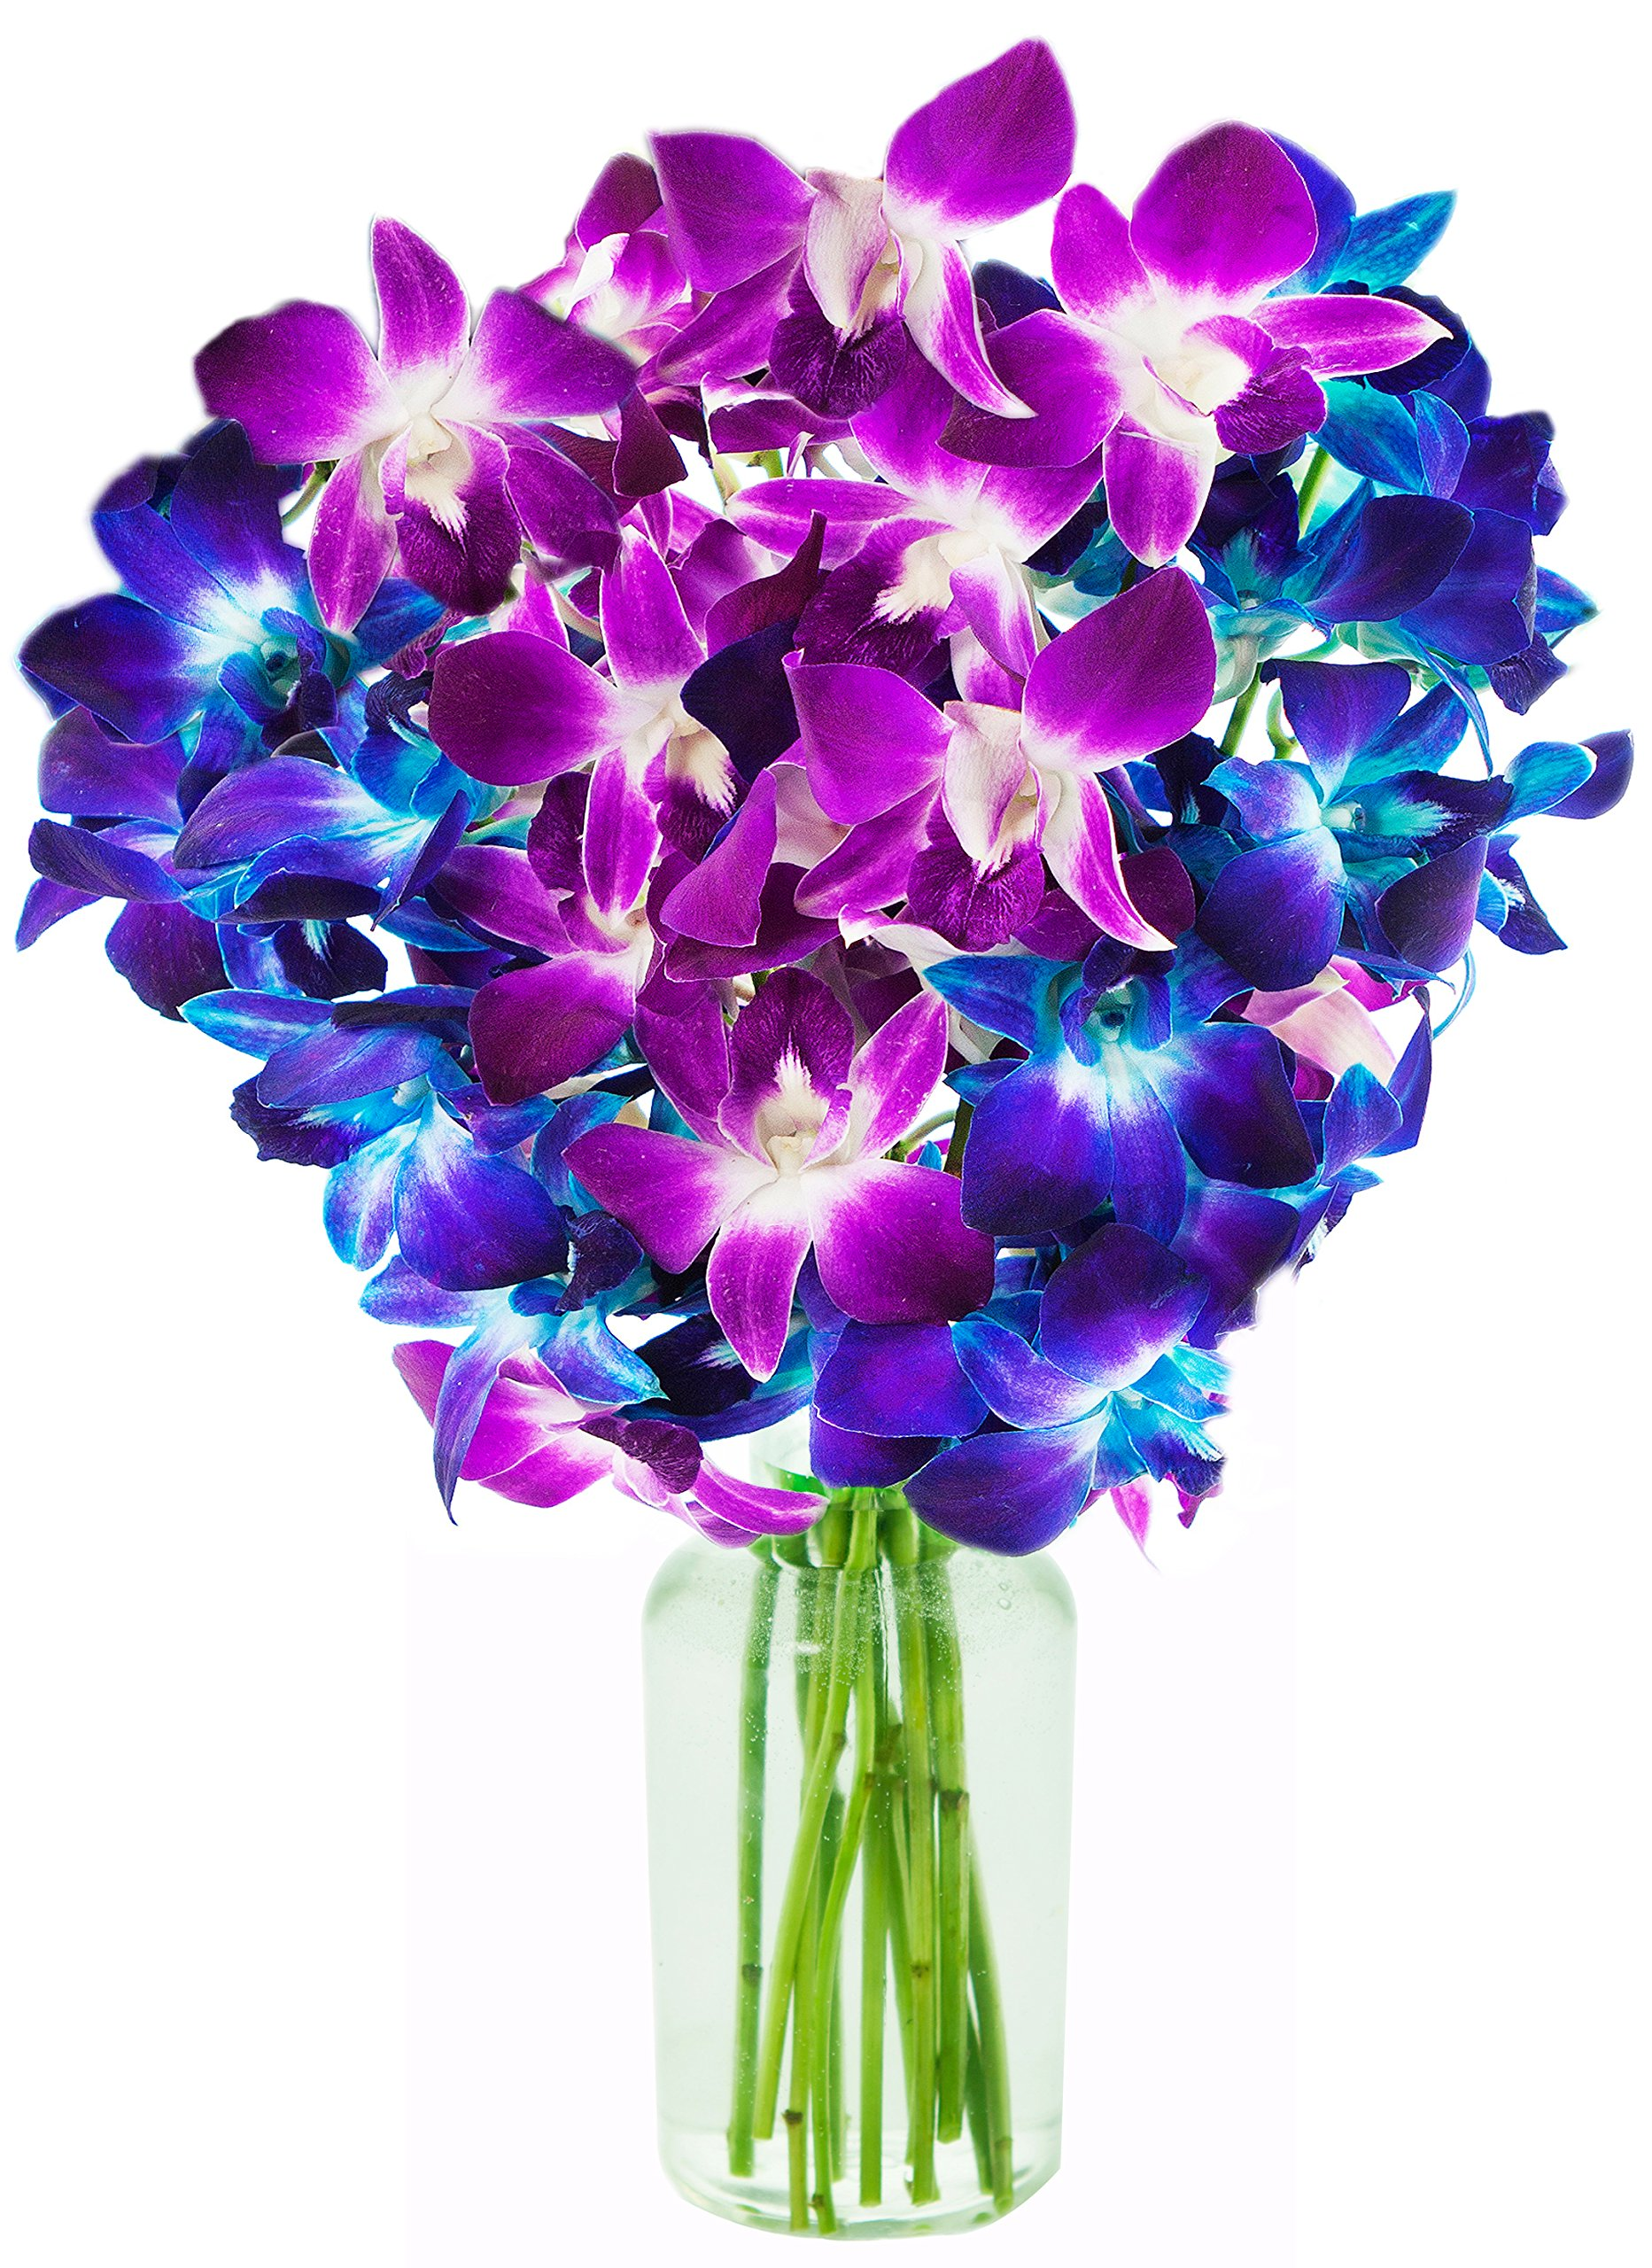 Exotic Orchid Bouquet of 5 Blue Dendrobium Orchids & 5 Purple Dendrobium Orchids from Thailand